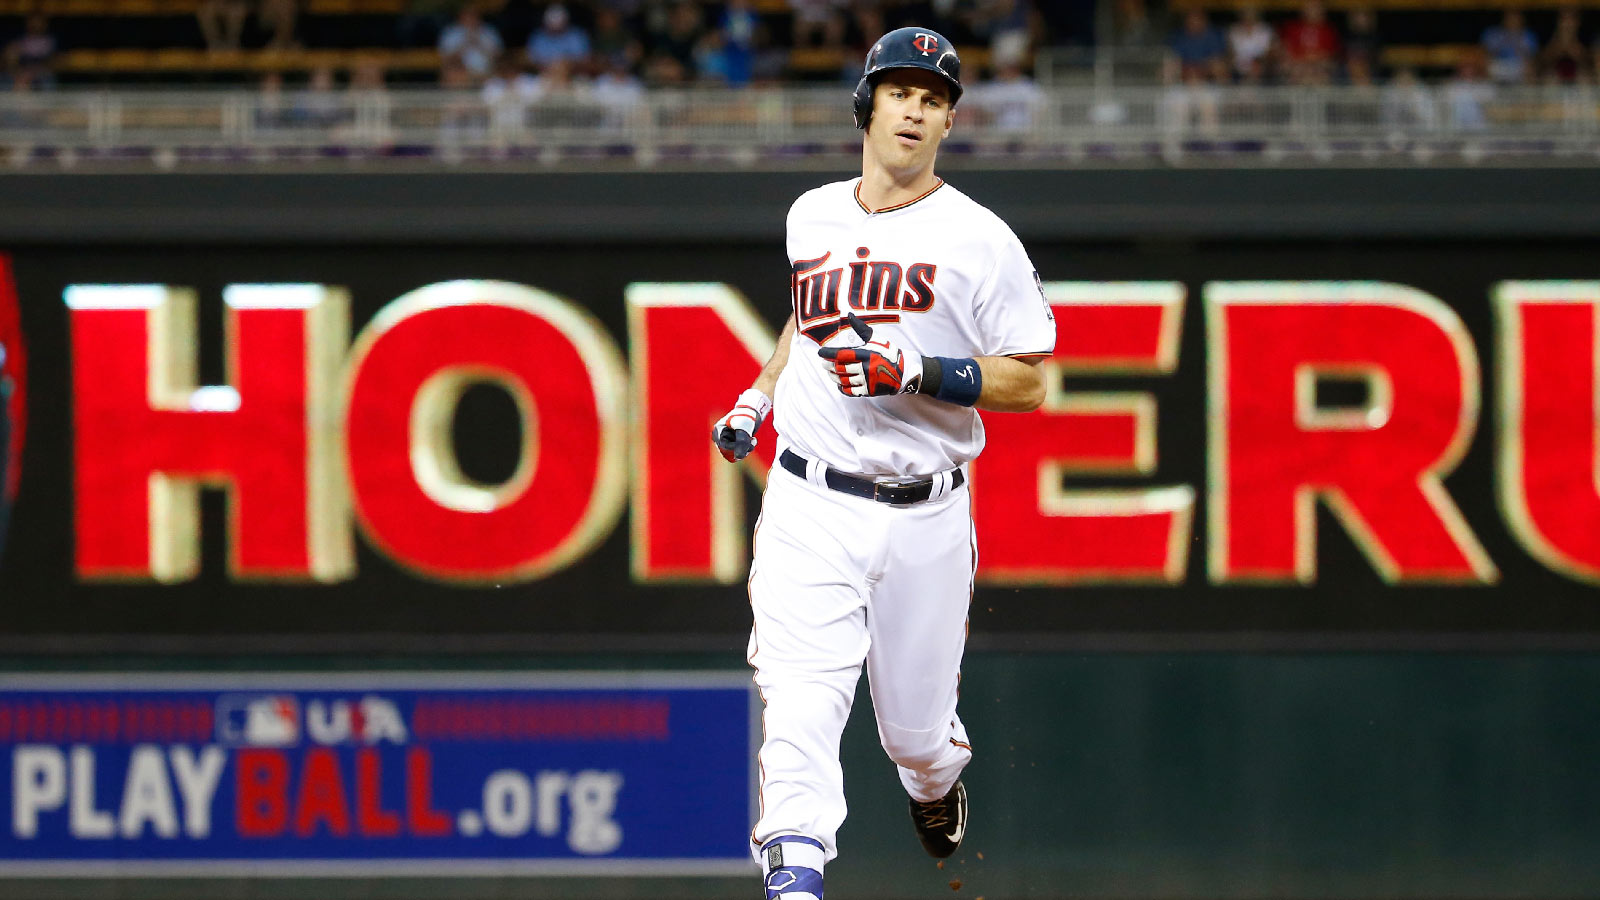 Twins look to build on recent success vs Red Sox